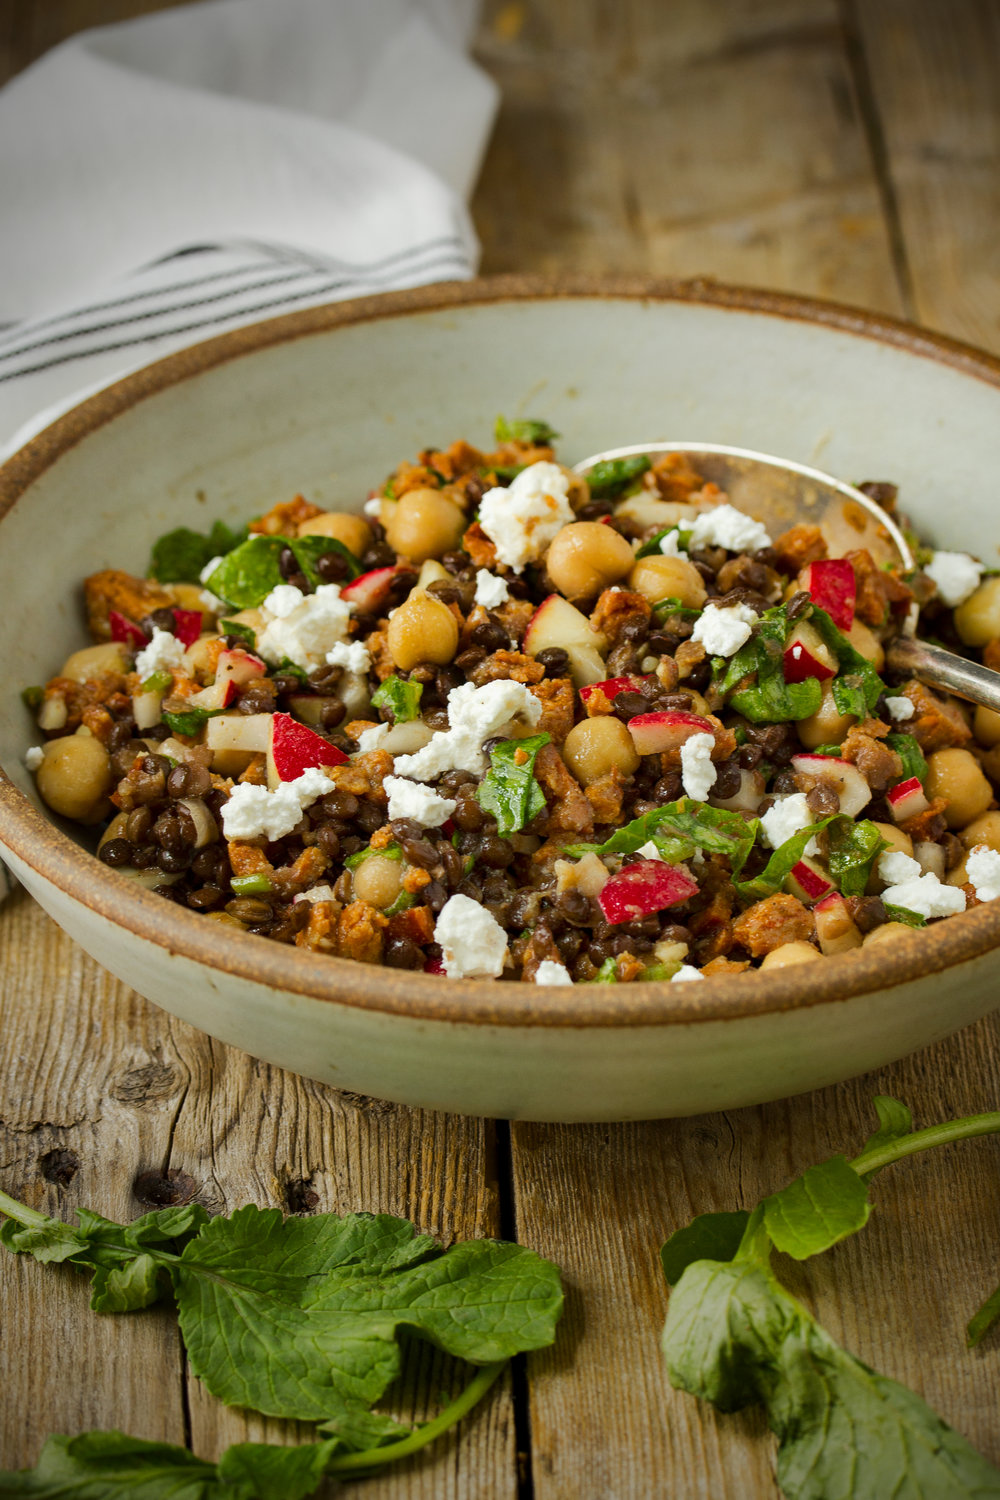 Radish, Chickpea and Black Lentil Salad with Andouille Sausage